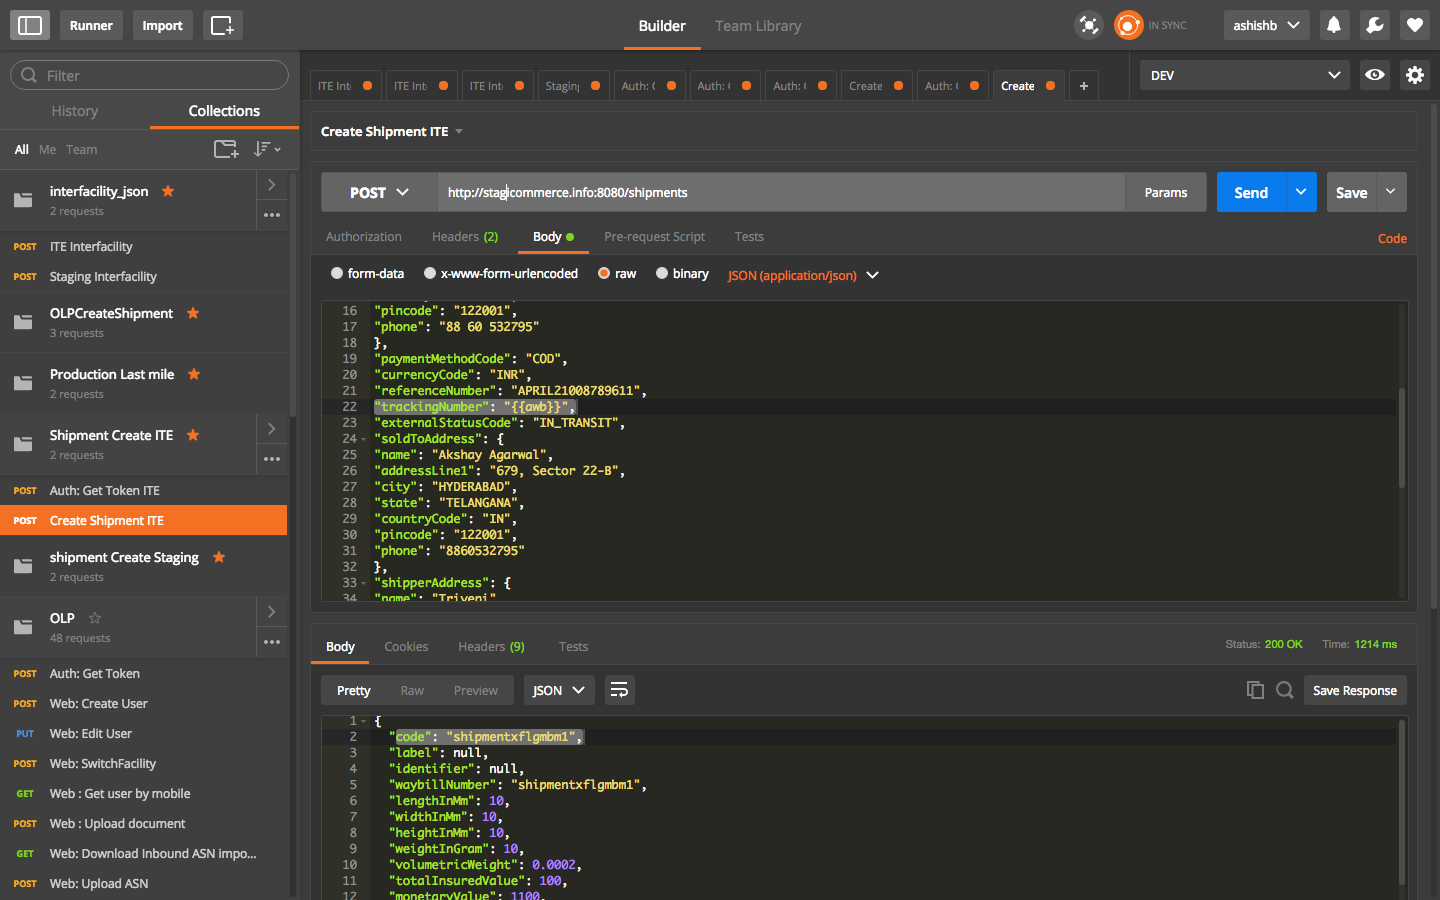 How To Automate Rest API in Postman